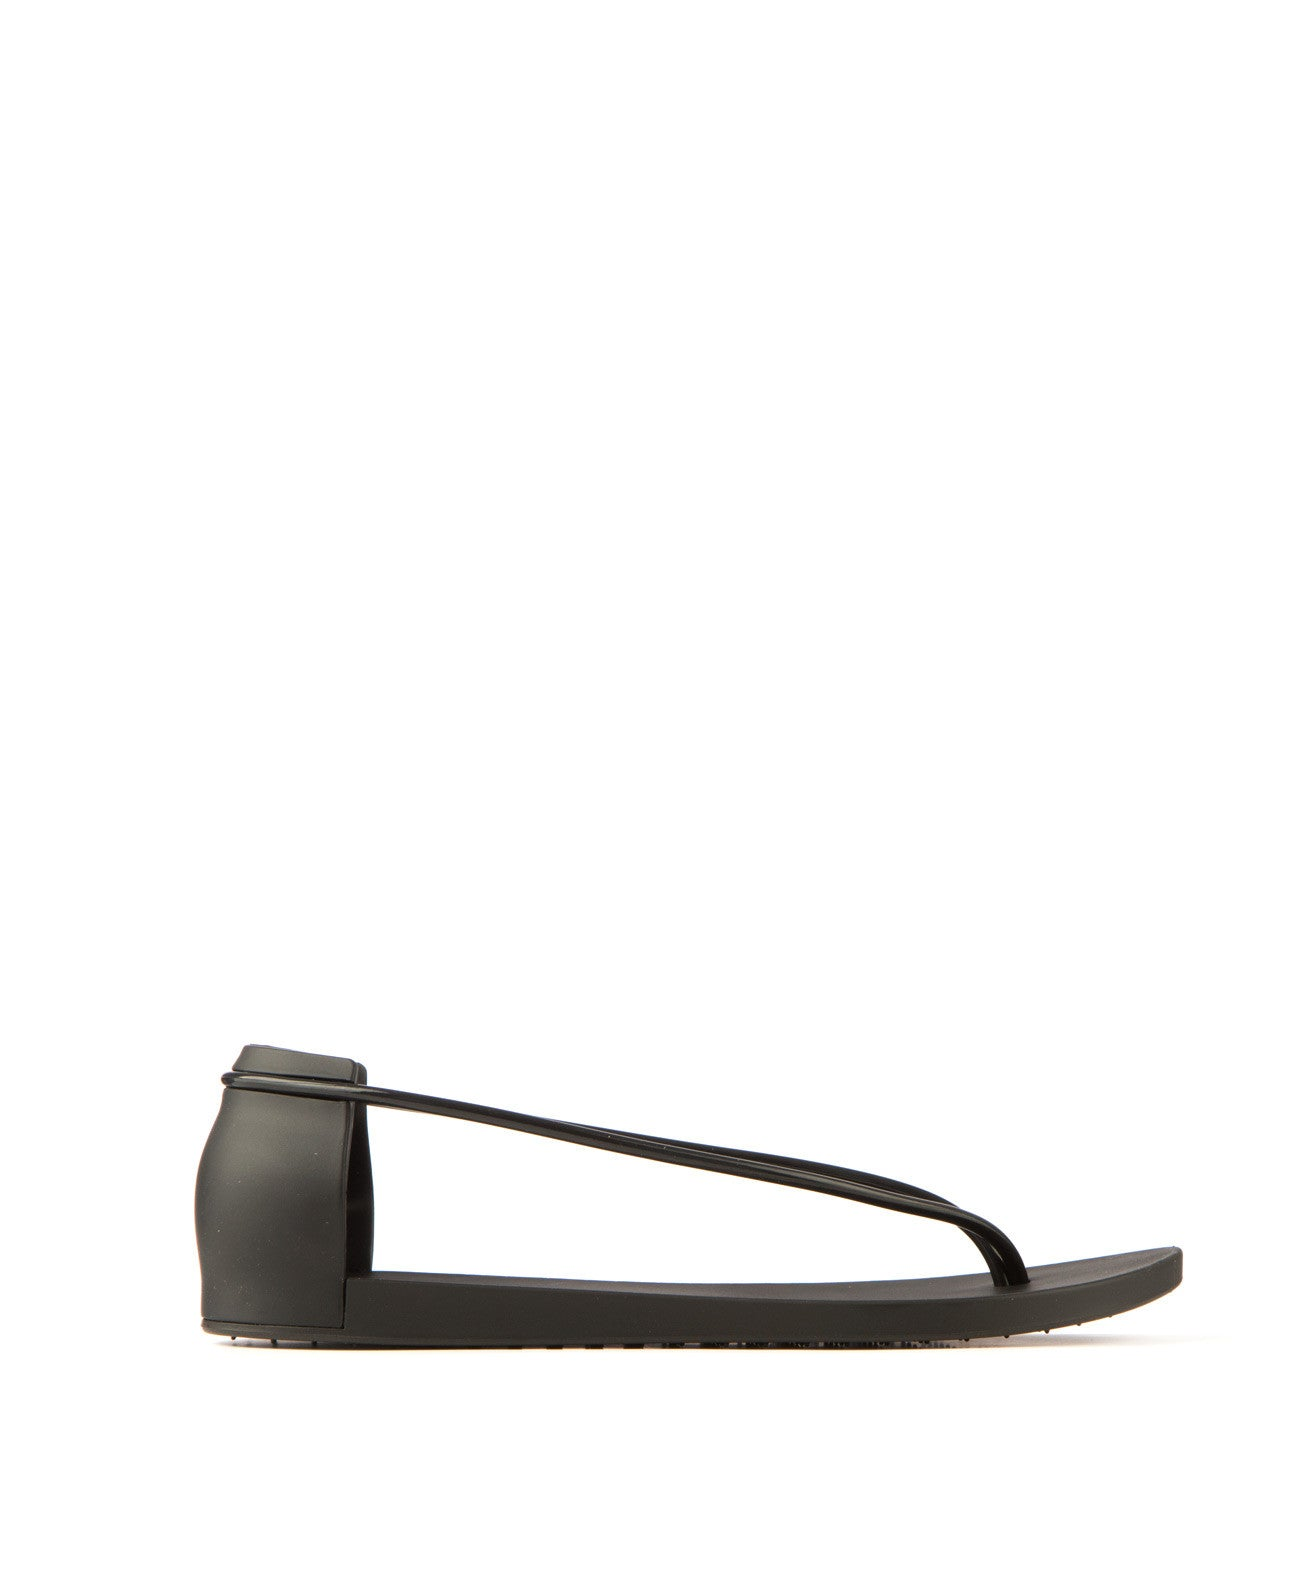 Phillipe Starck Thing N sandal - Koko & Palenki - 1